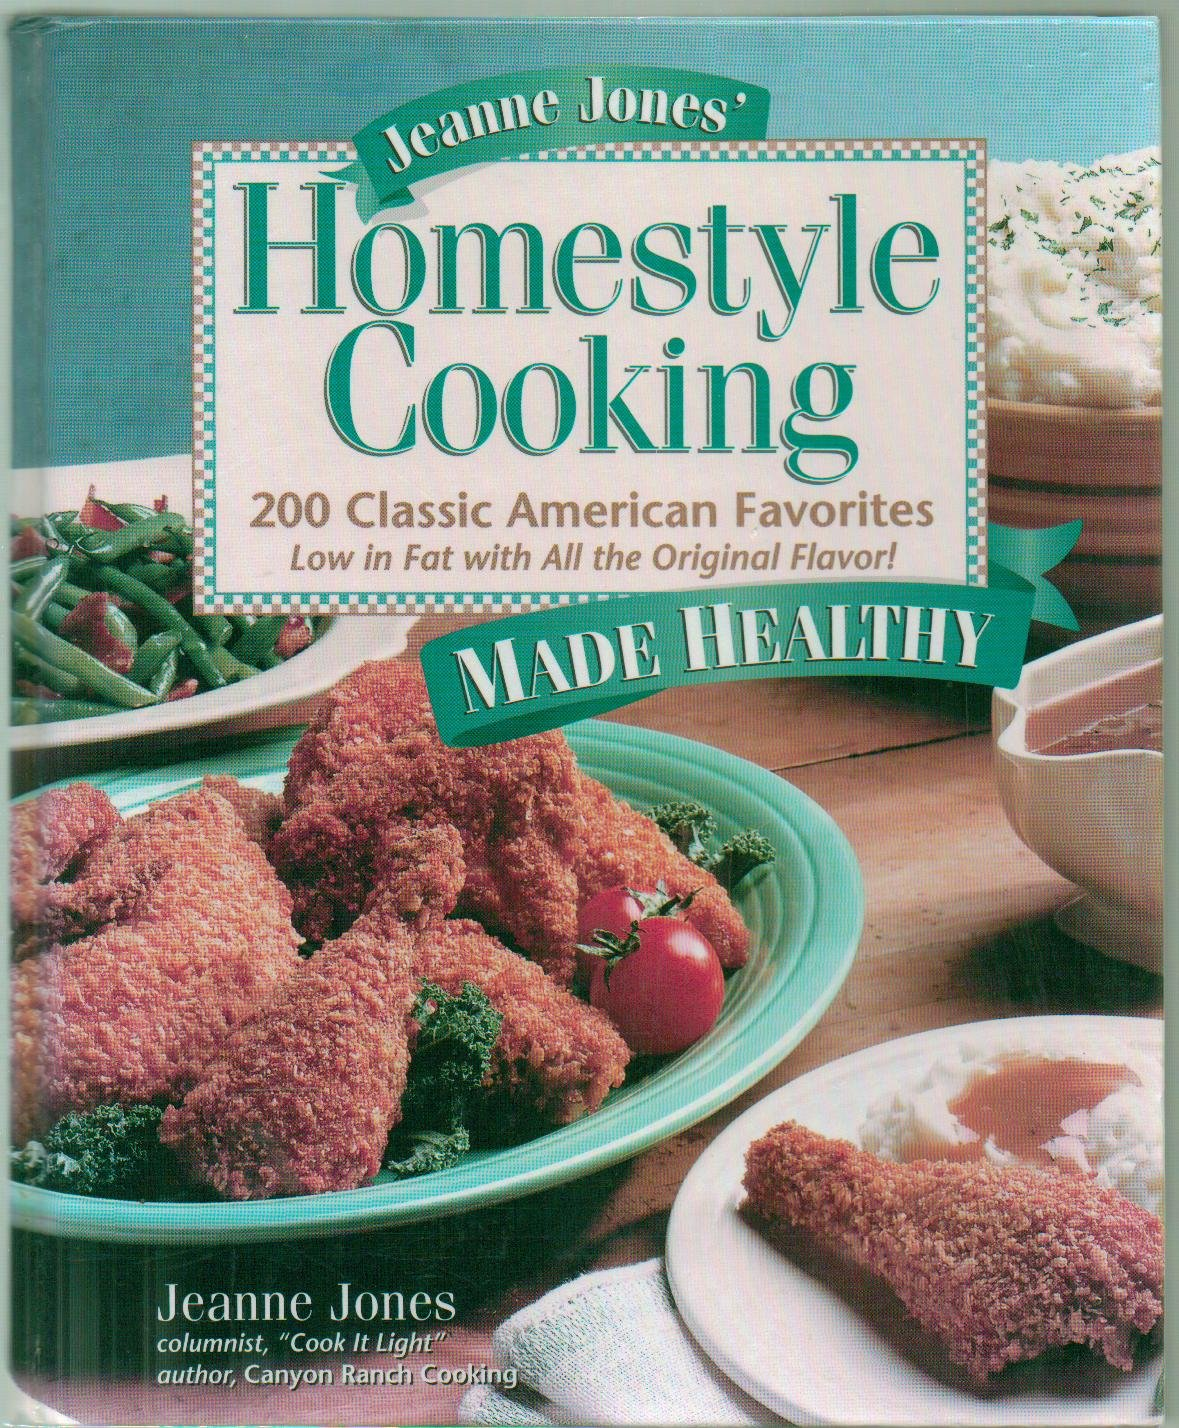 Download Homestyle Cooking: Jeanne Jones' Homestyle Cooking: 200 Classic American Favorites: Low in Fat with All the Original Flavor! Made Healthy - Hardcover - First Edition, 6th Printing 1999 pdf epub